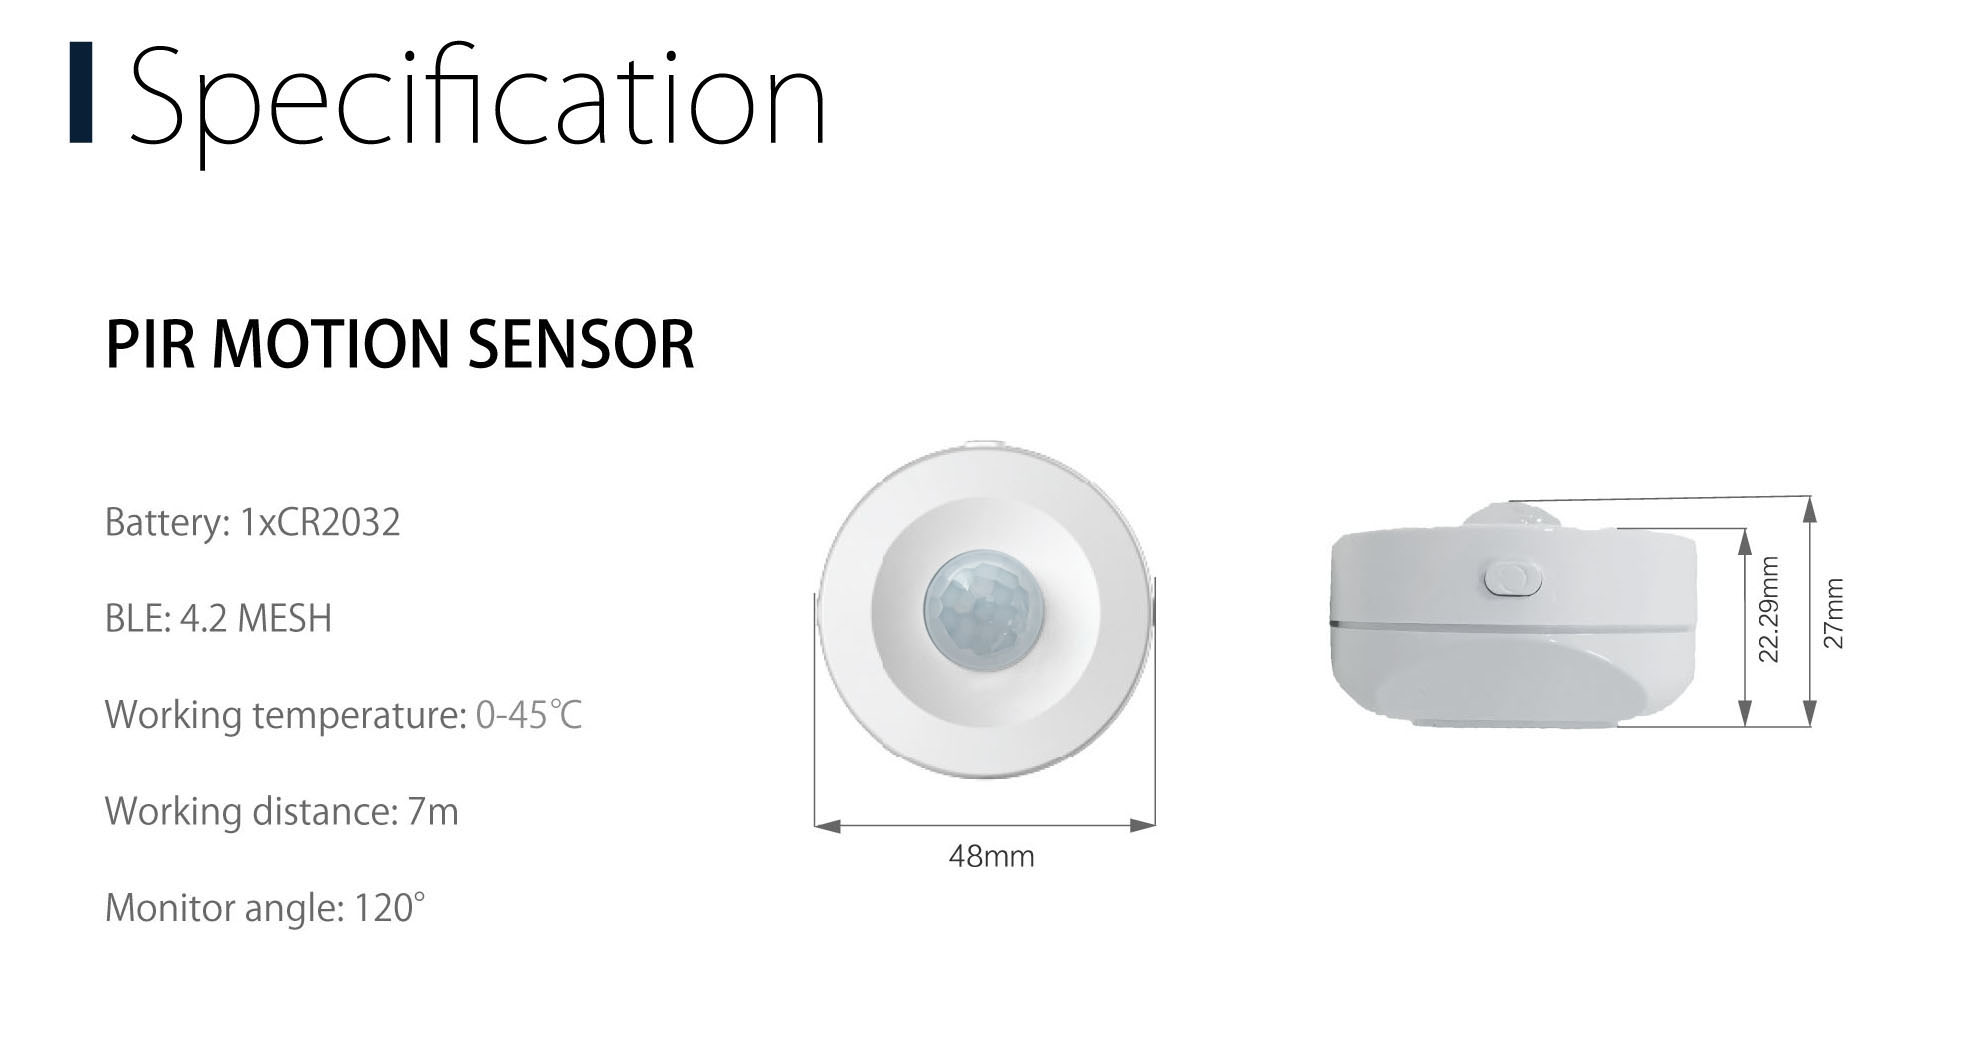 HH Wireless Bluetooth Mini PIR Motion Sensor TUYA for home security